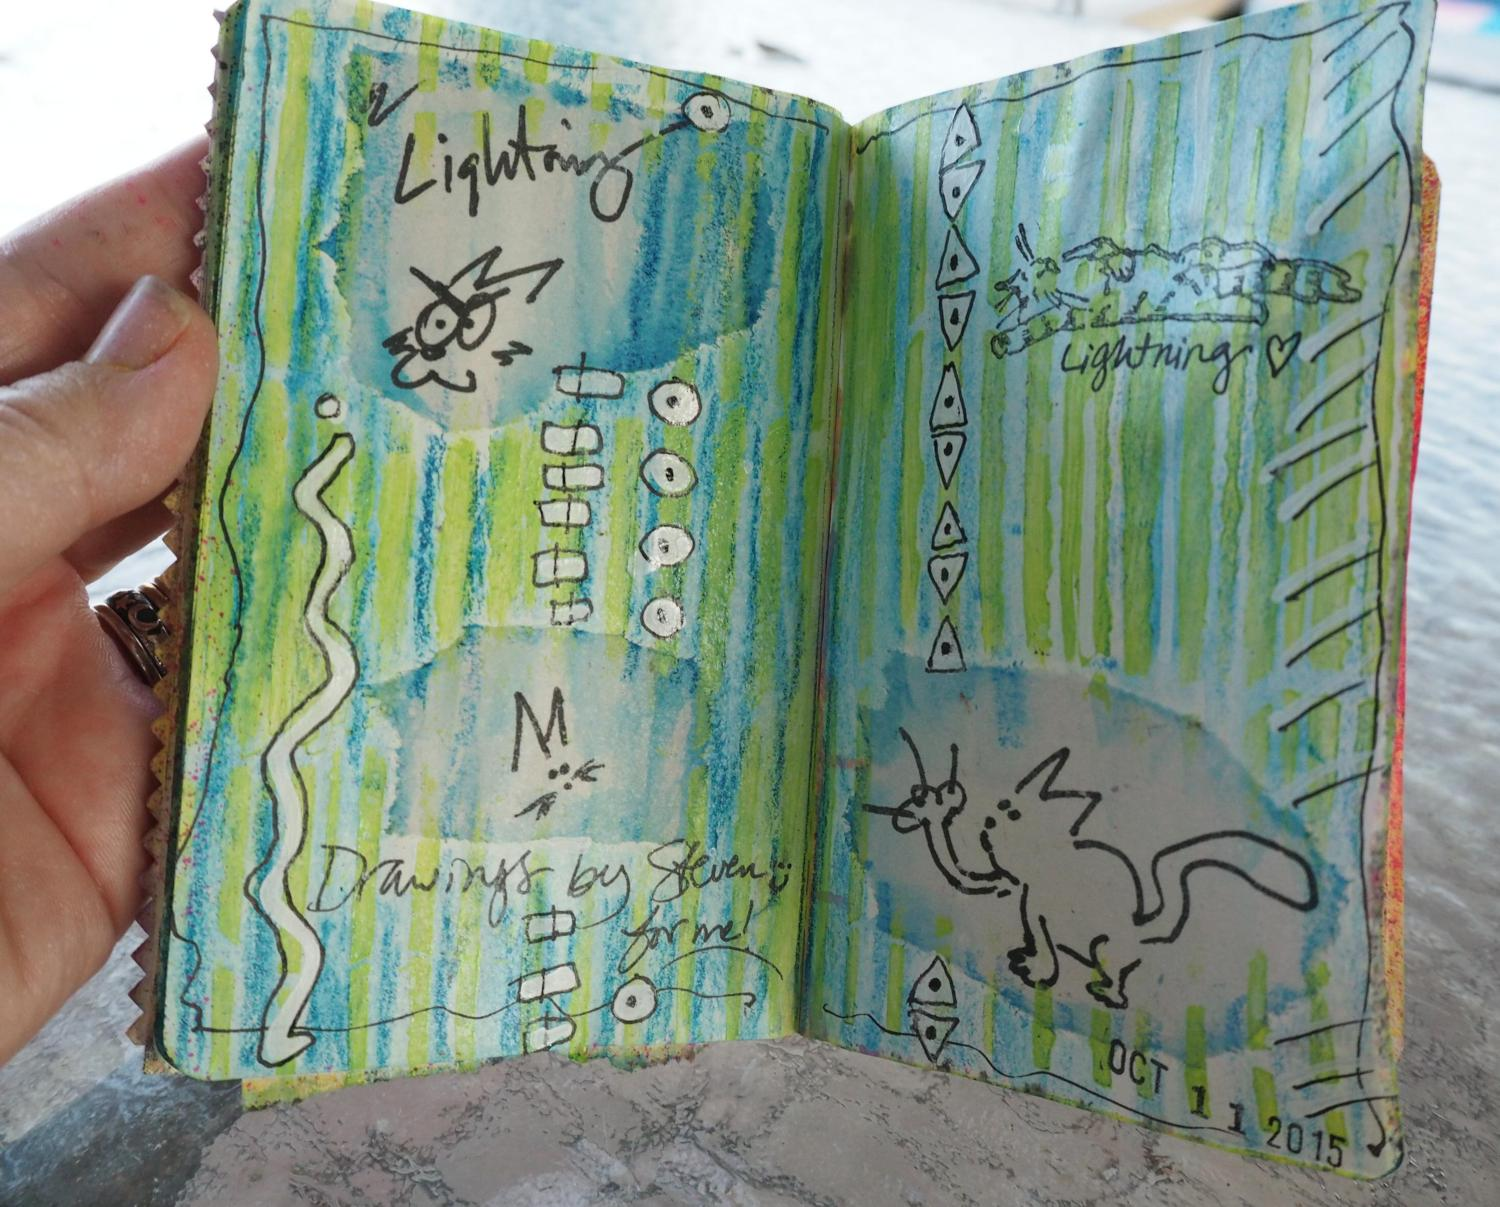 Steve's drawings now live in my journal